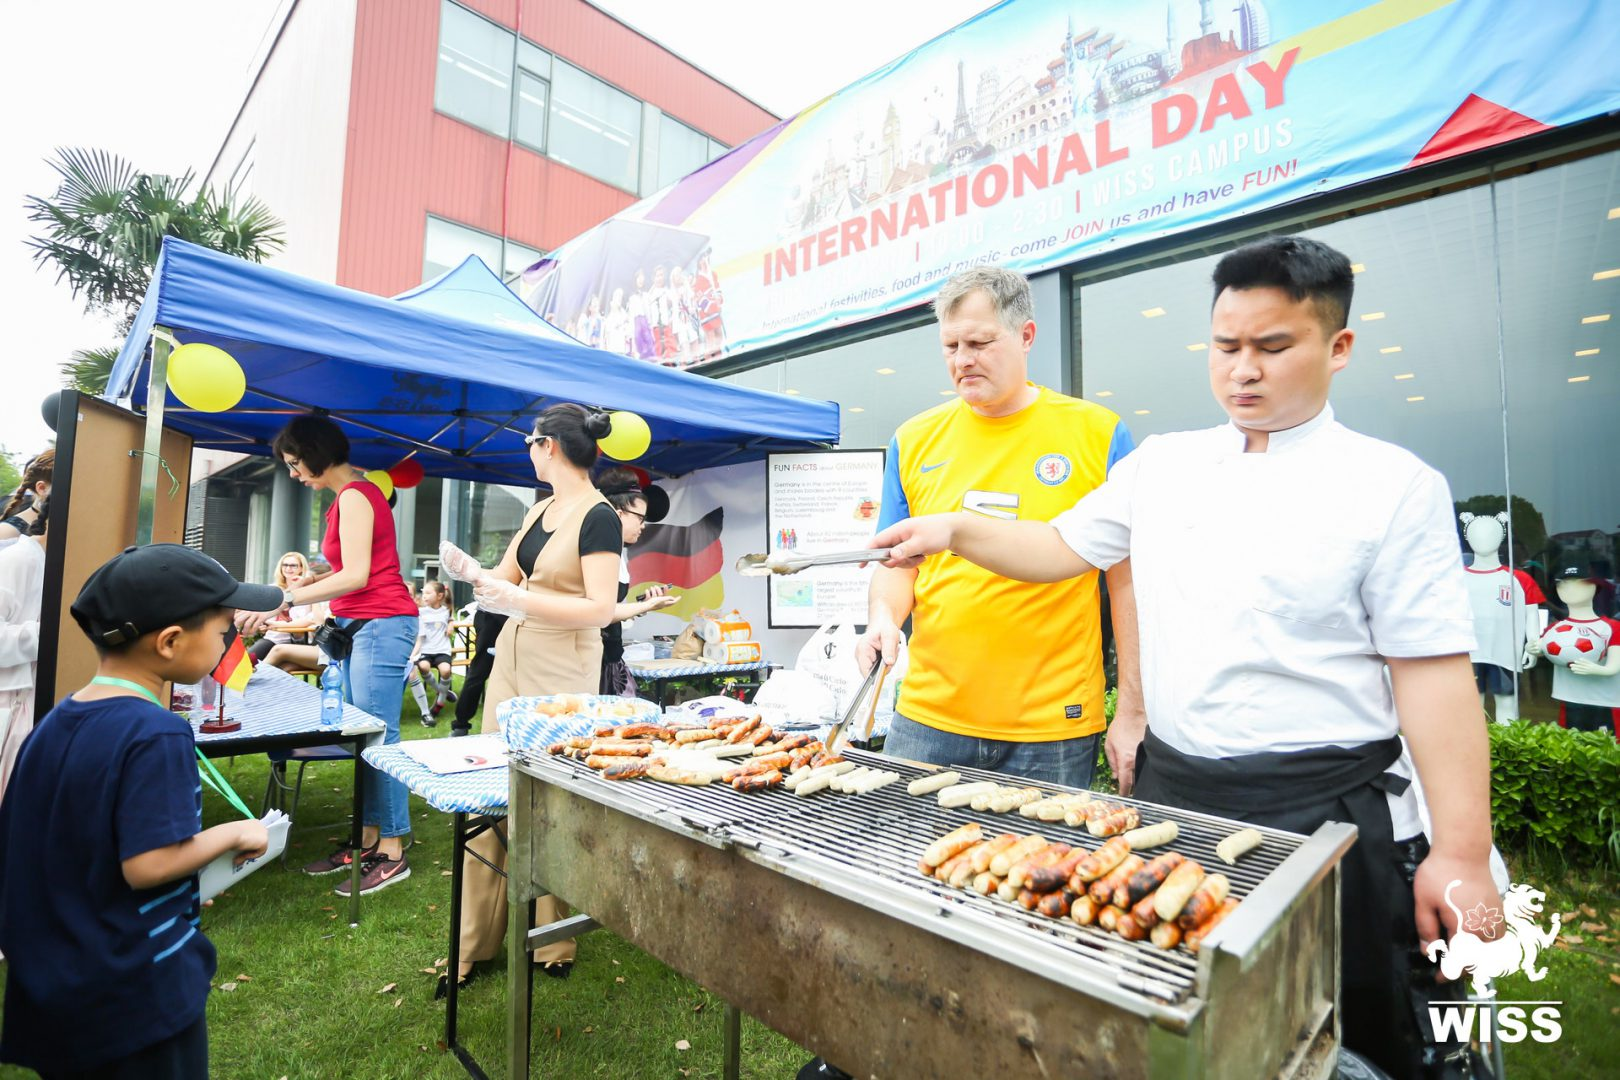 Traditional food from more than 50 different countries at The Western International School of Shanghai (WISS)